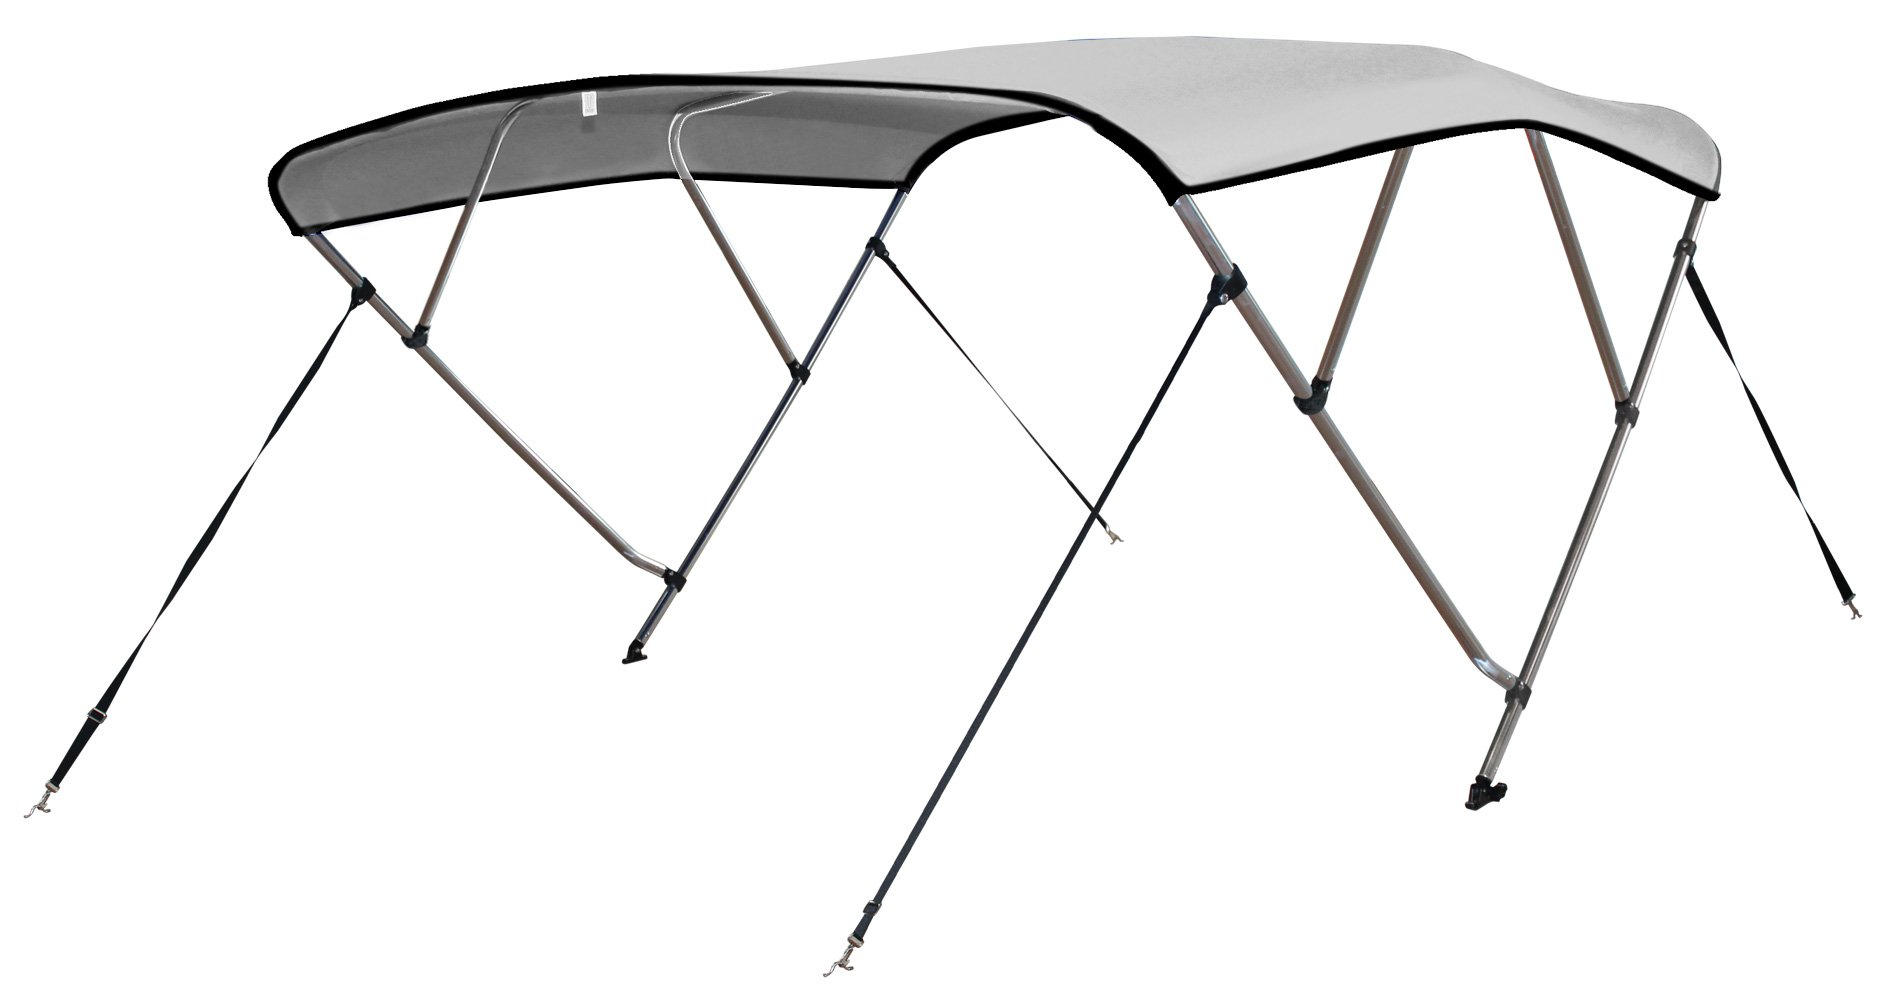 Leader Accessories 4 Bow White 8'L x 54'' H x 61''-66'' W Bimini Tops Boat Cover 4 Straps for Front and Rear Includes Mounting Hardwares with 1 Inch Aluminum Frame by Leader Accessories